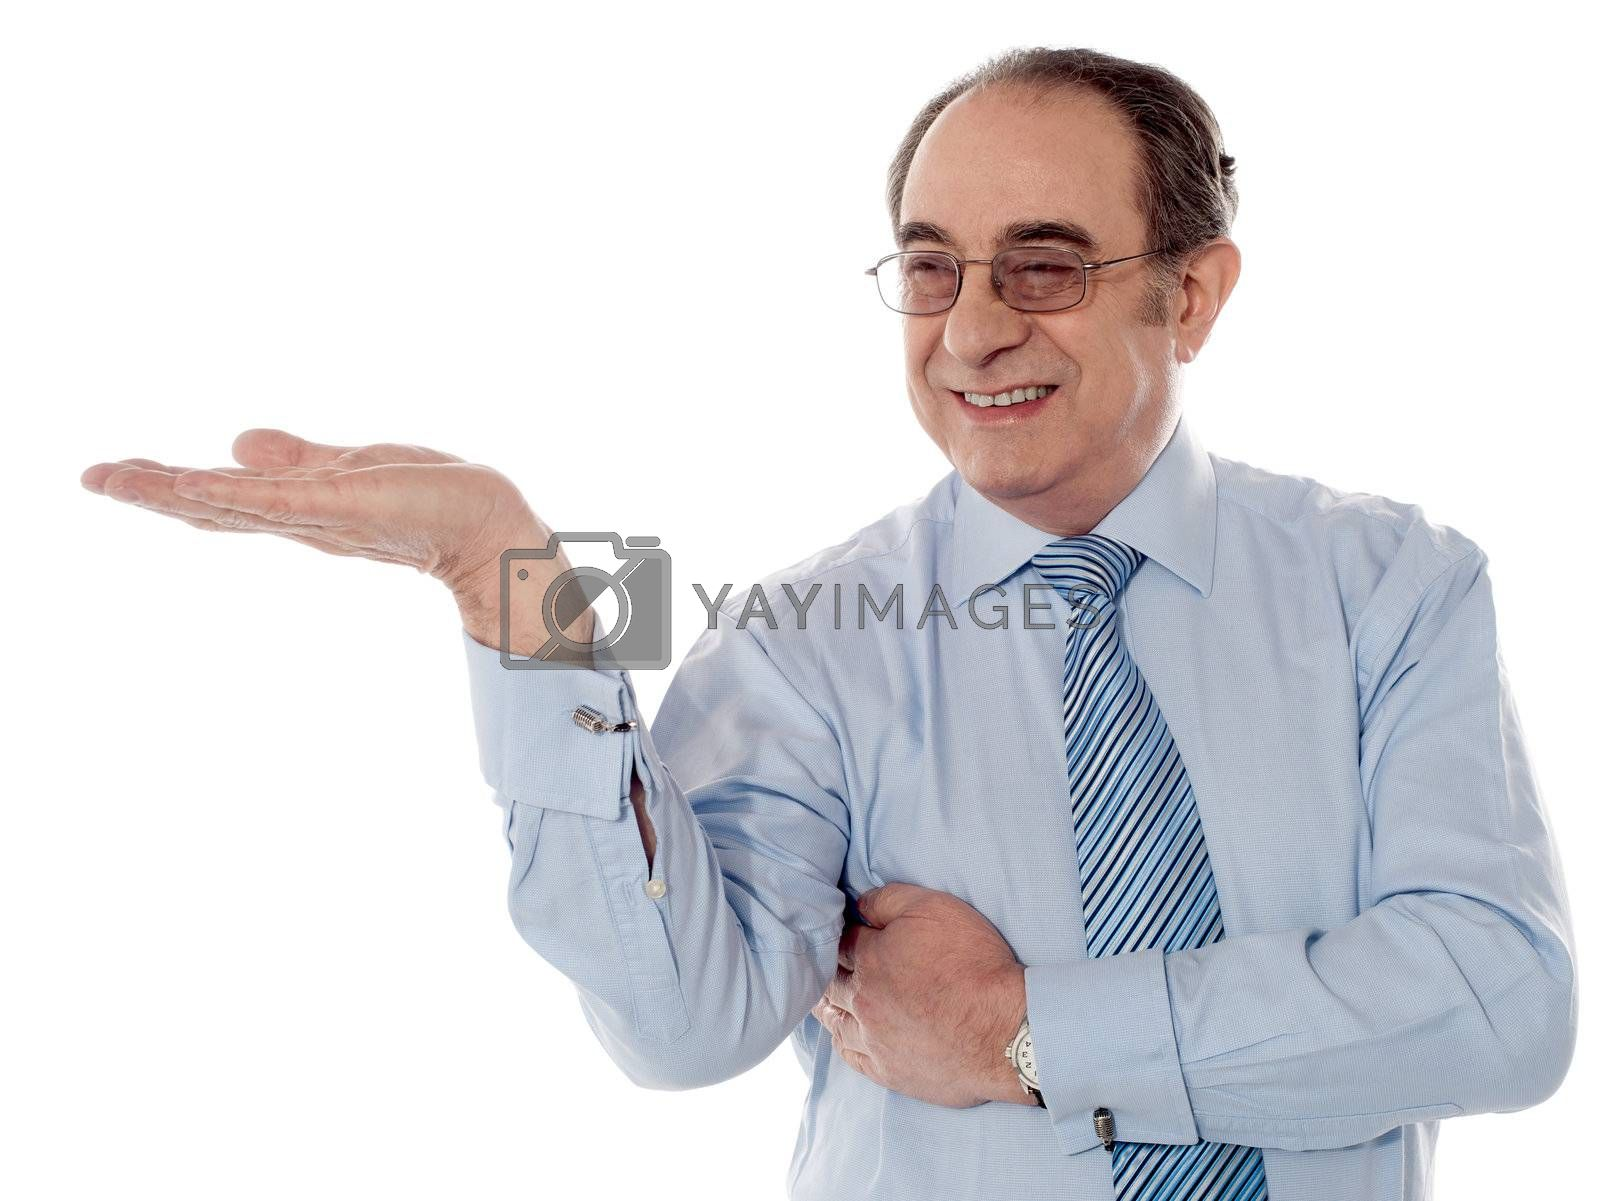 Boss posing with an open palm isolated on white